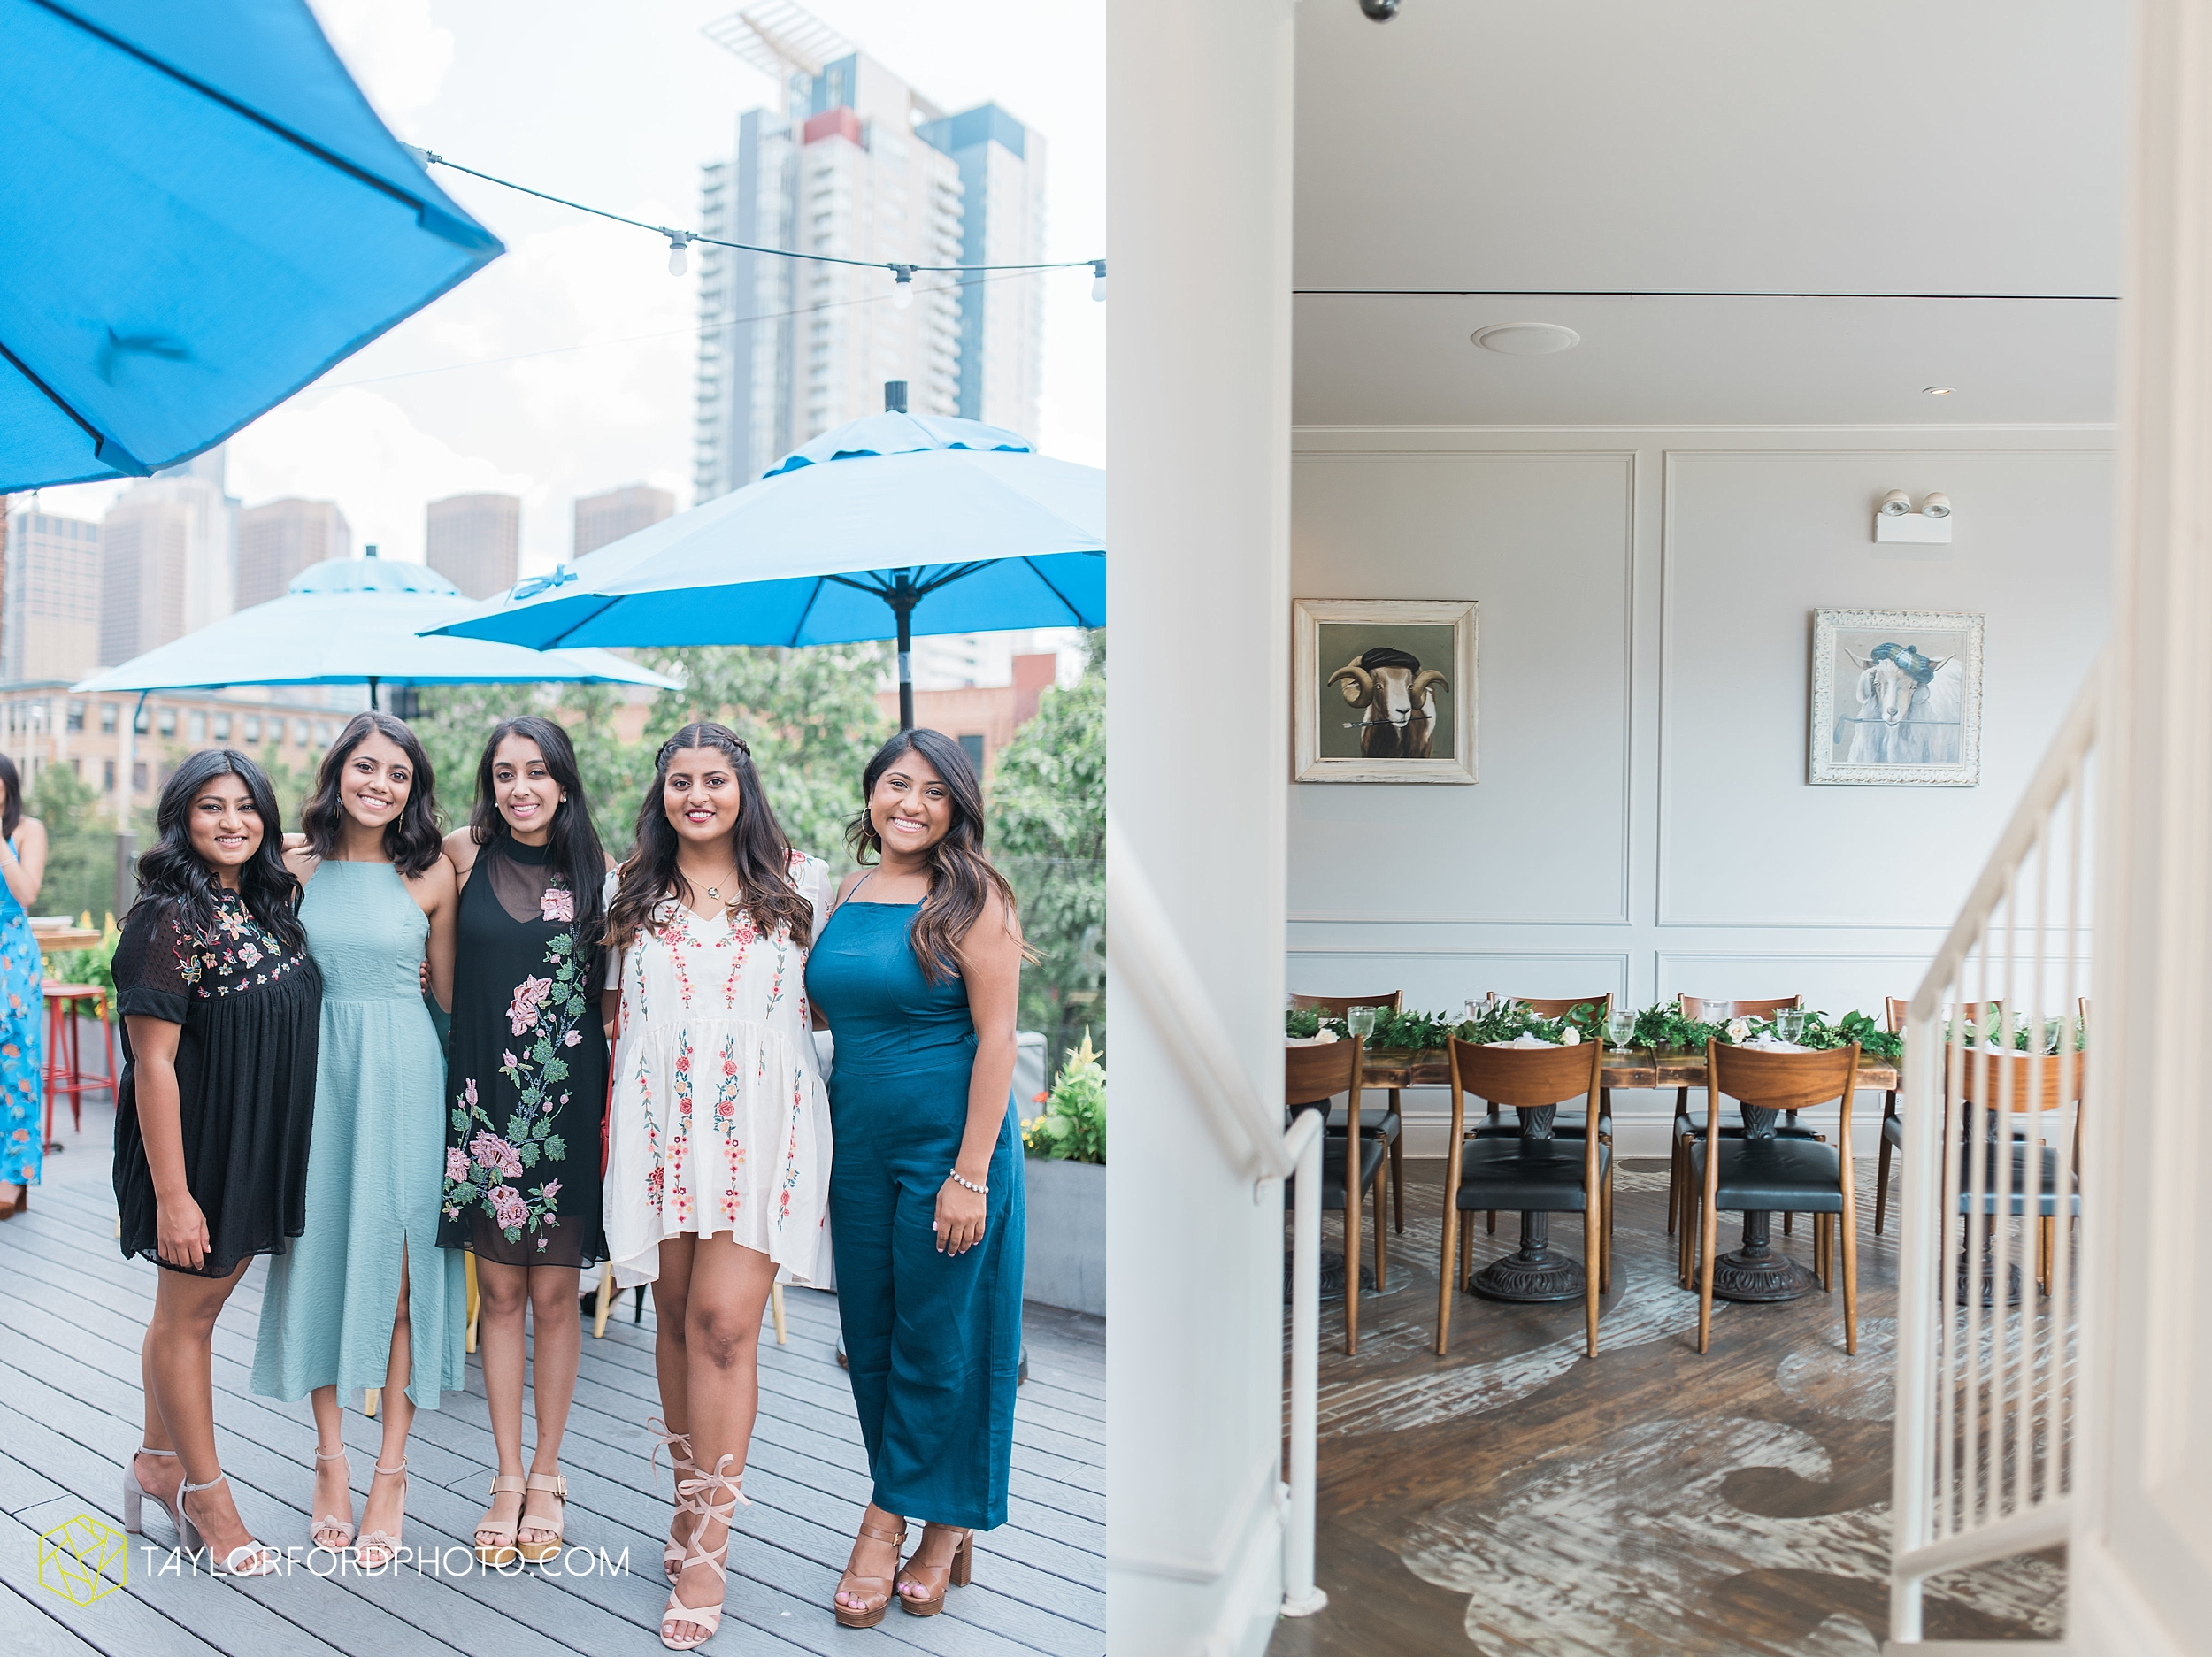 chicago-illinois-bridal-shower-wedding-engagement-photographer-Taylor-Ford-Photography-the-little-goat-diner-rooftop-indian-ceremony_5092.jpg